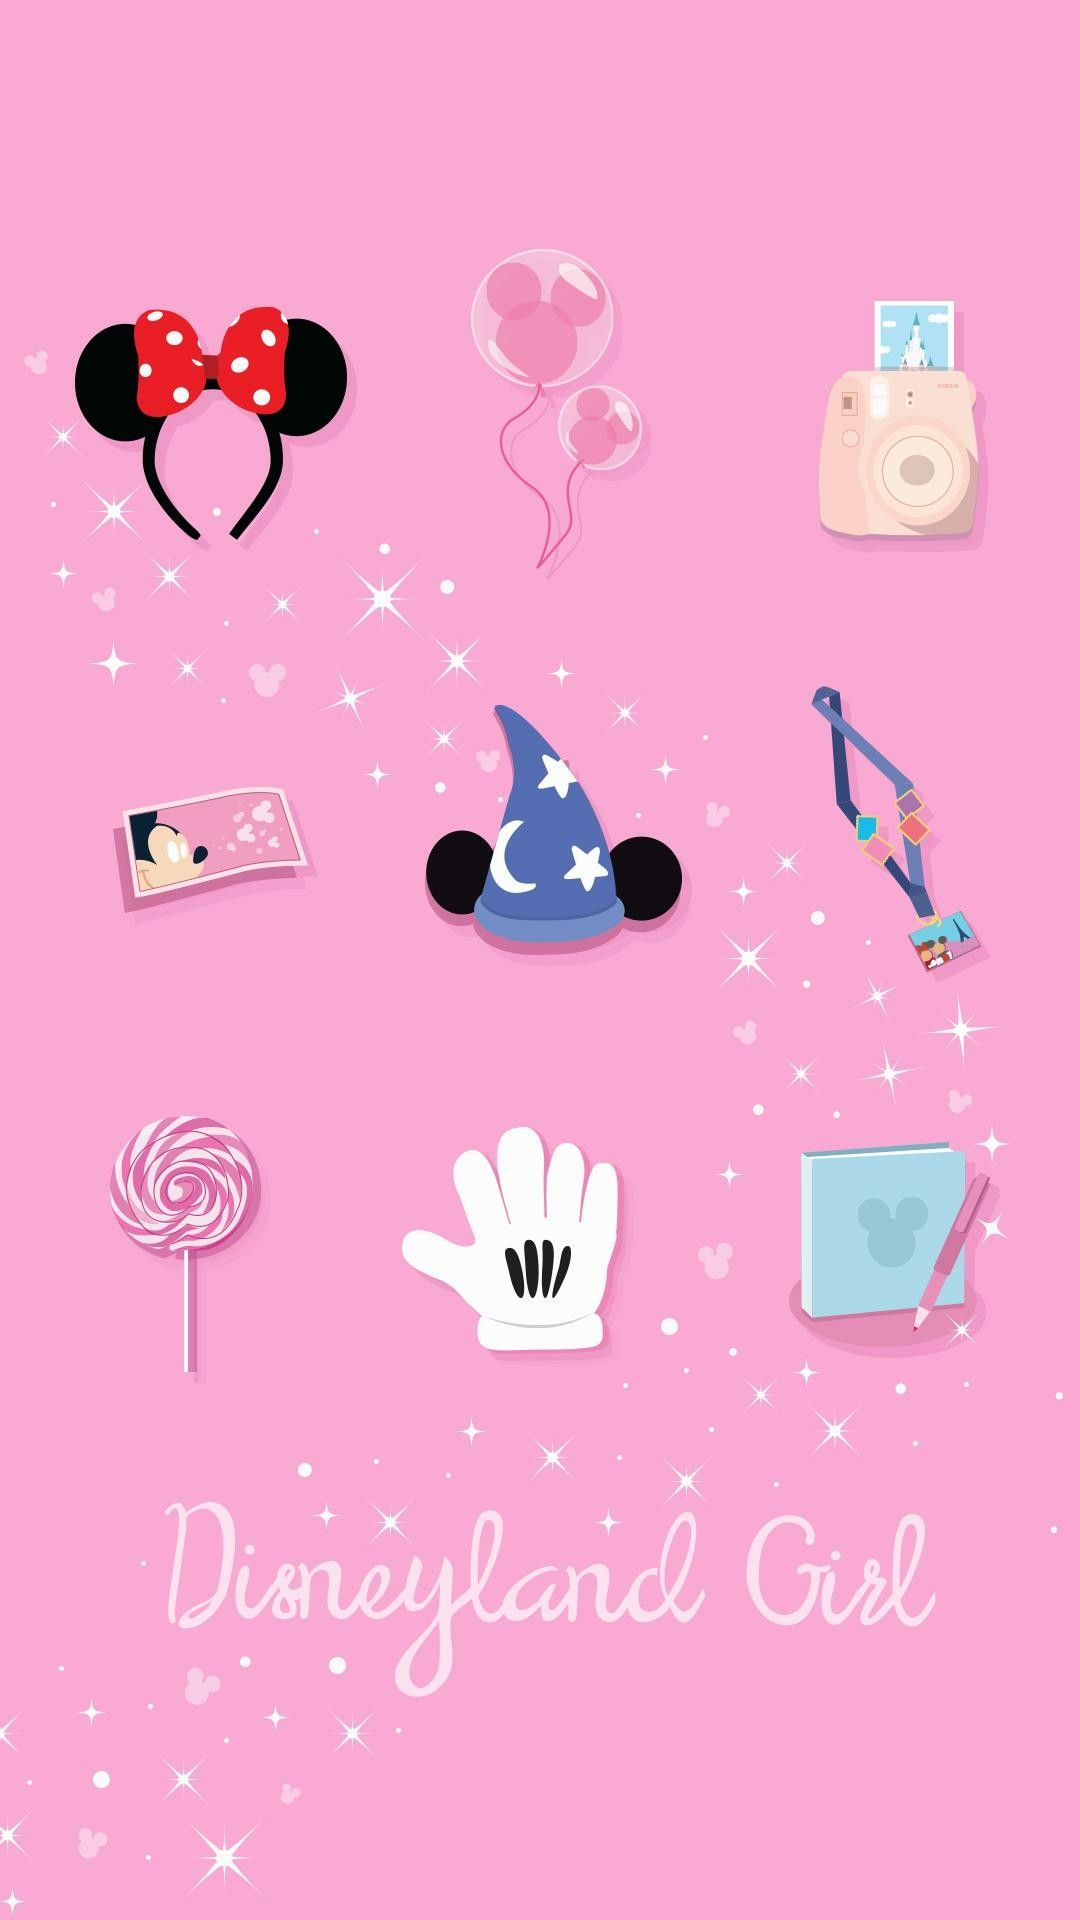 Pin By Melanie Desmettre On Wallpapers 3 Disneyland Iphone Wallpaper Wallpaper Iphone Disney Cute Wallpapers For Ipad